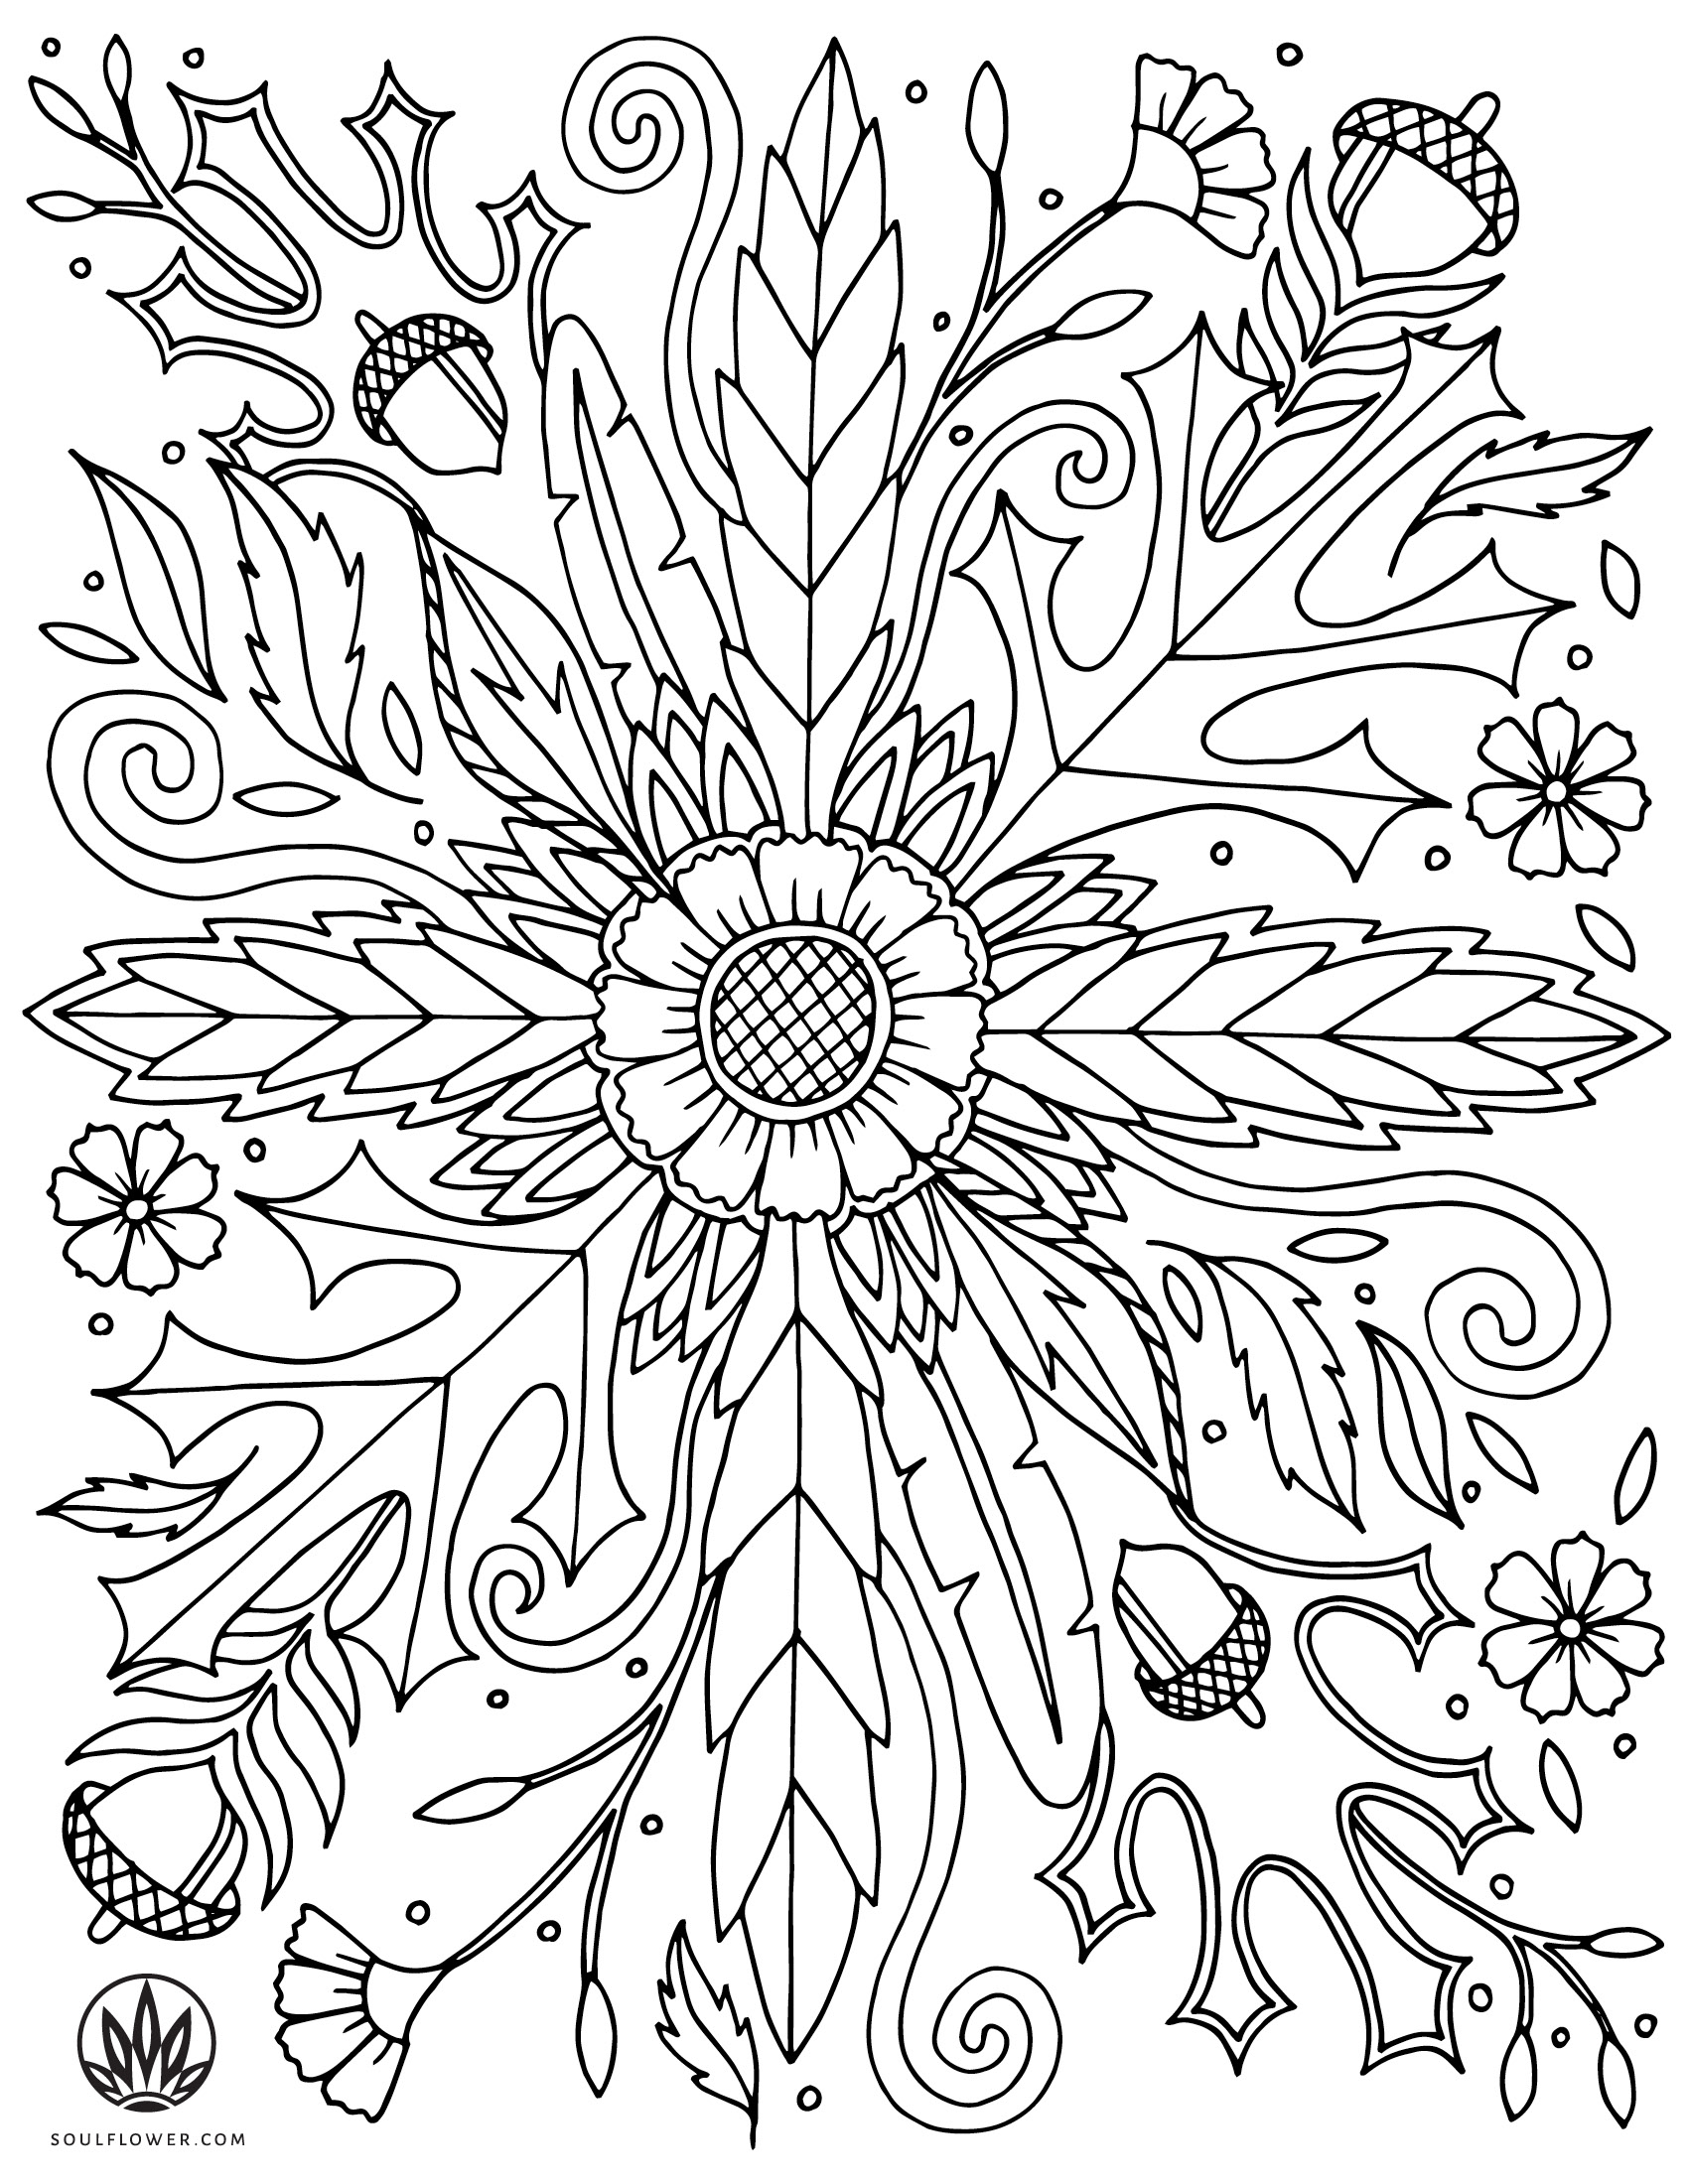 soulflower coloring page thanksgiving 1 - DIY Thanksgiving Coloring Page